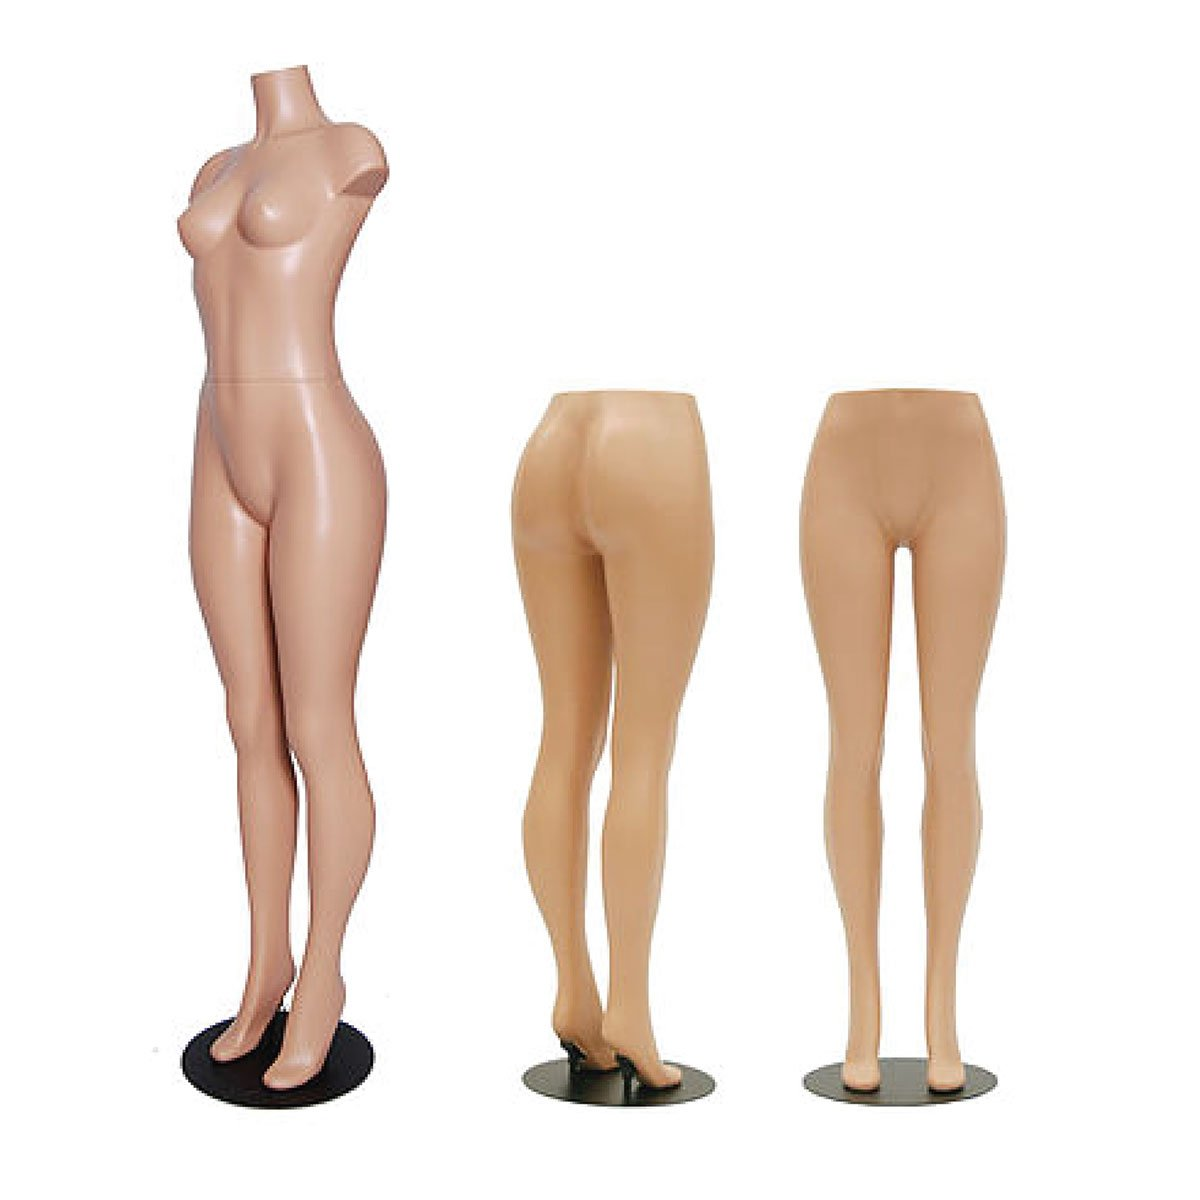 Brazilian Hips Style Mannequin: With or Without Torso